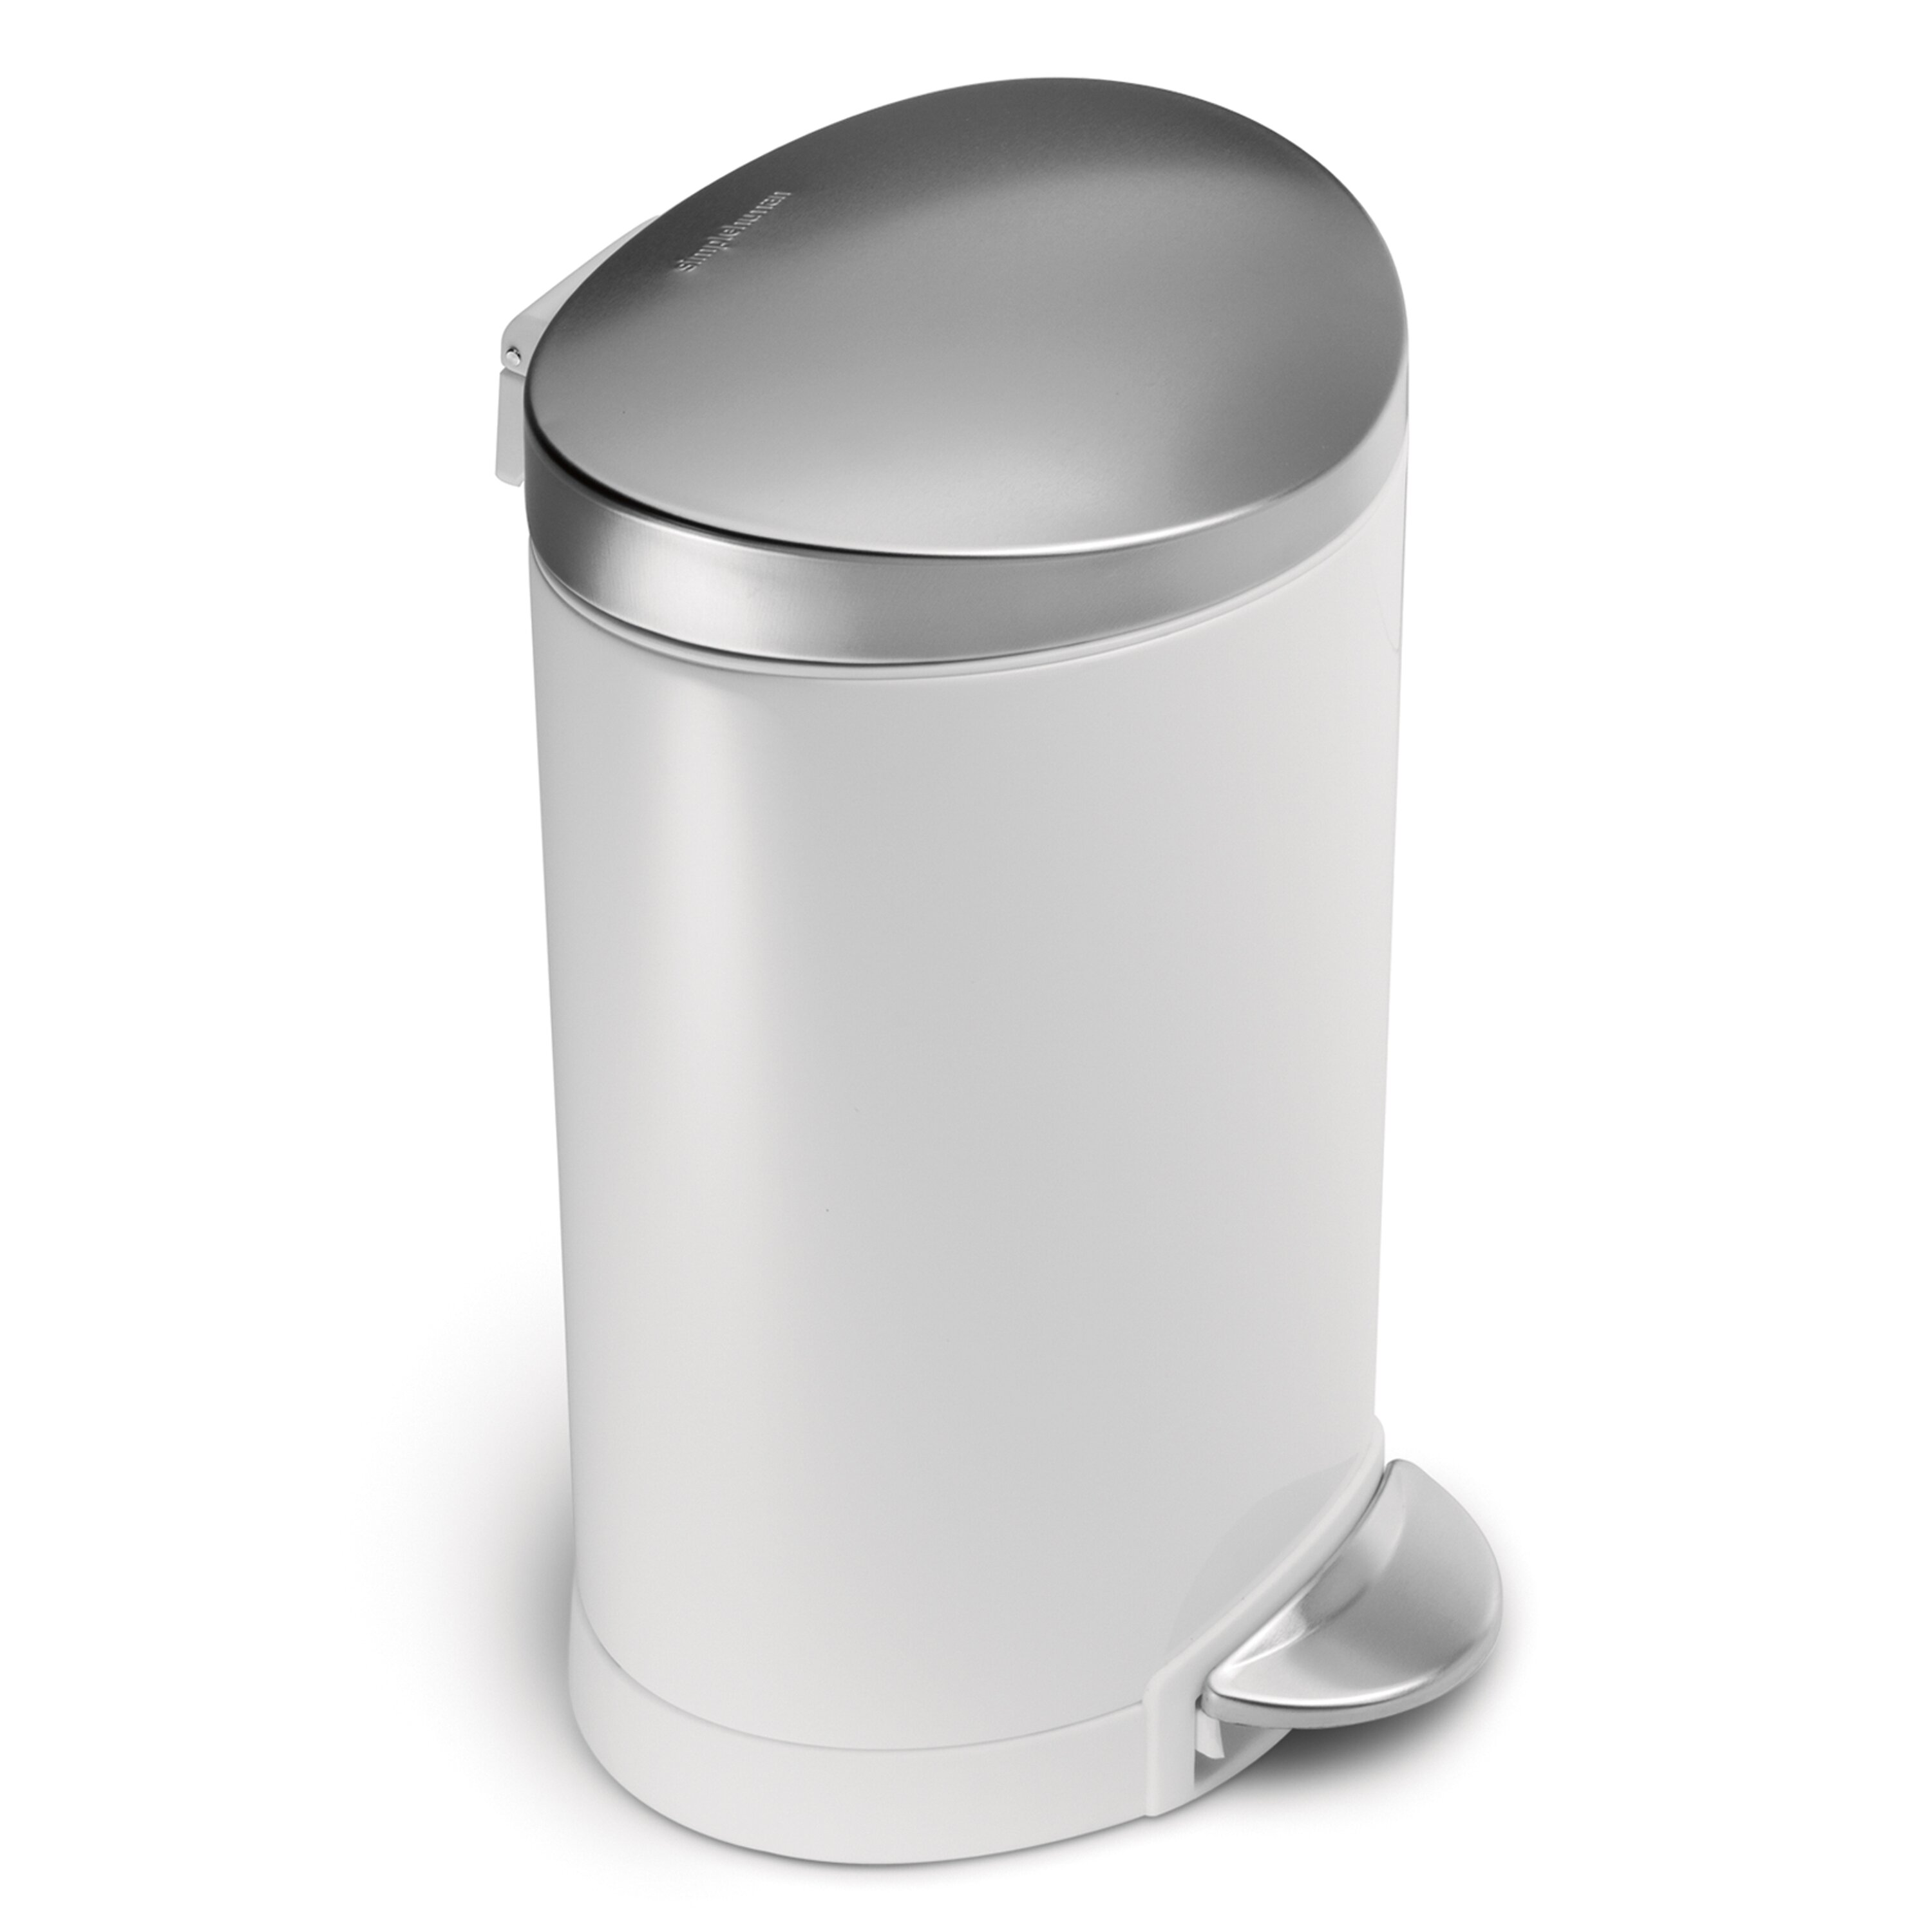 . 1 6 Gallon Semi Round Step Trash Can  White Steel with Stainless Steel Lid